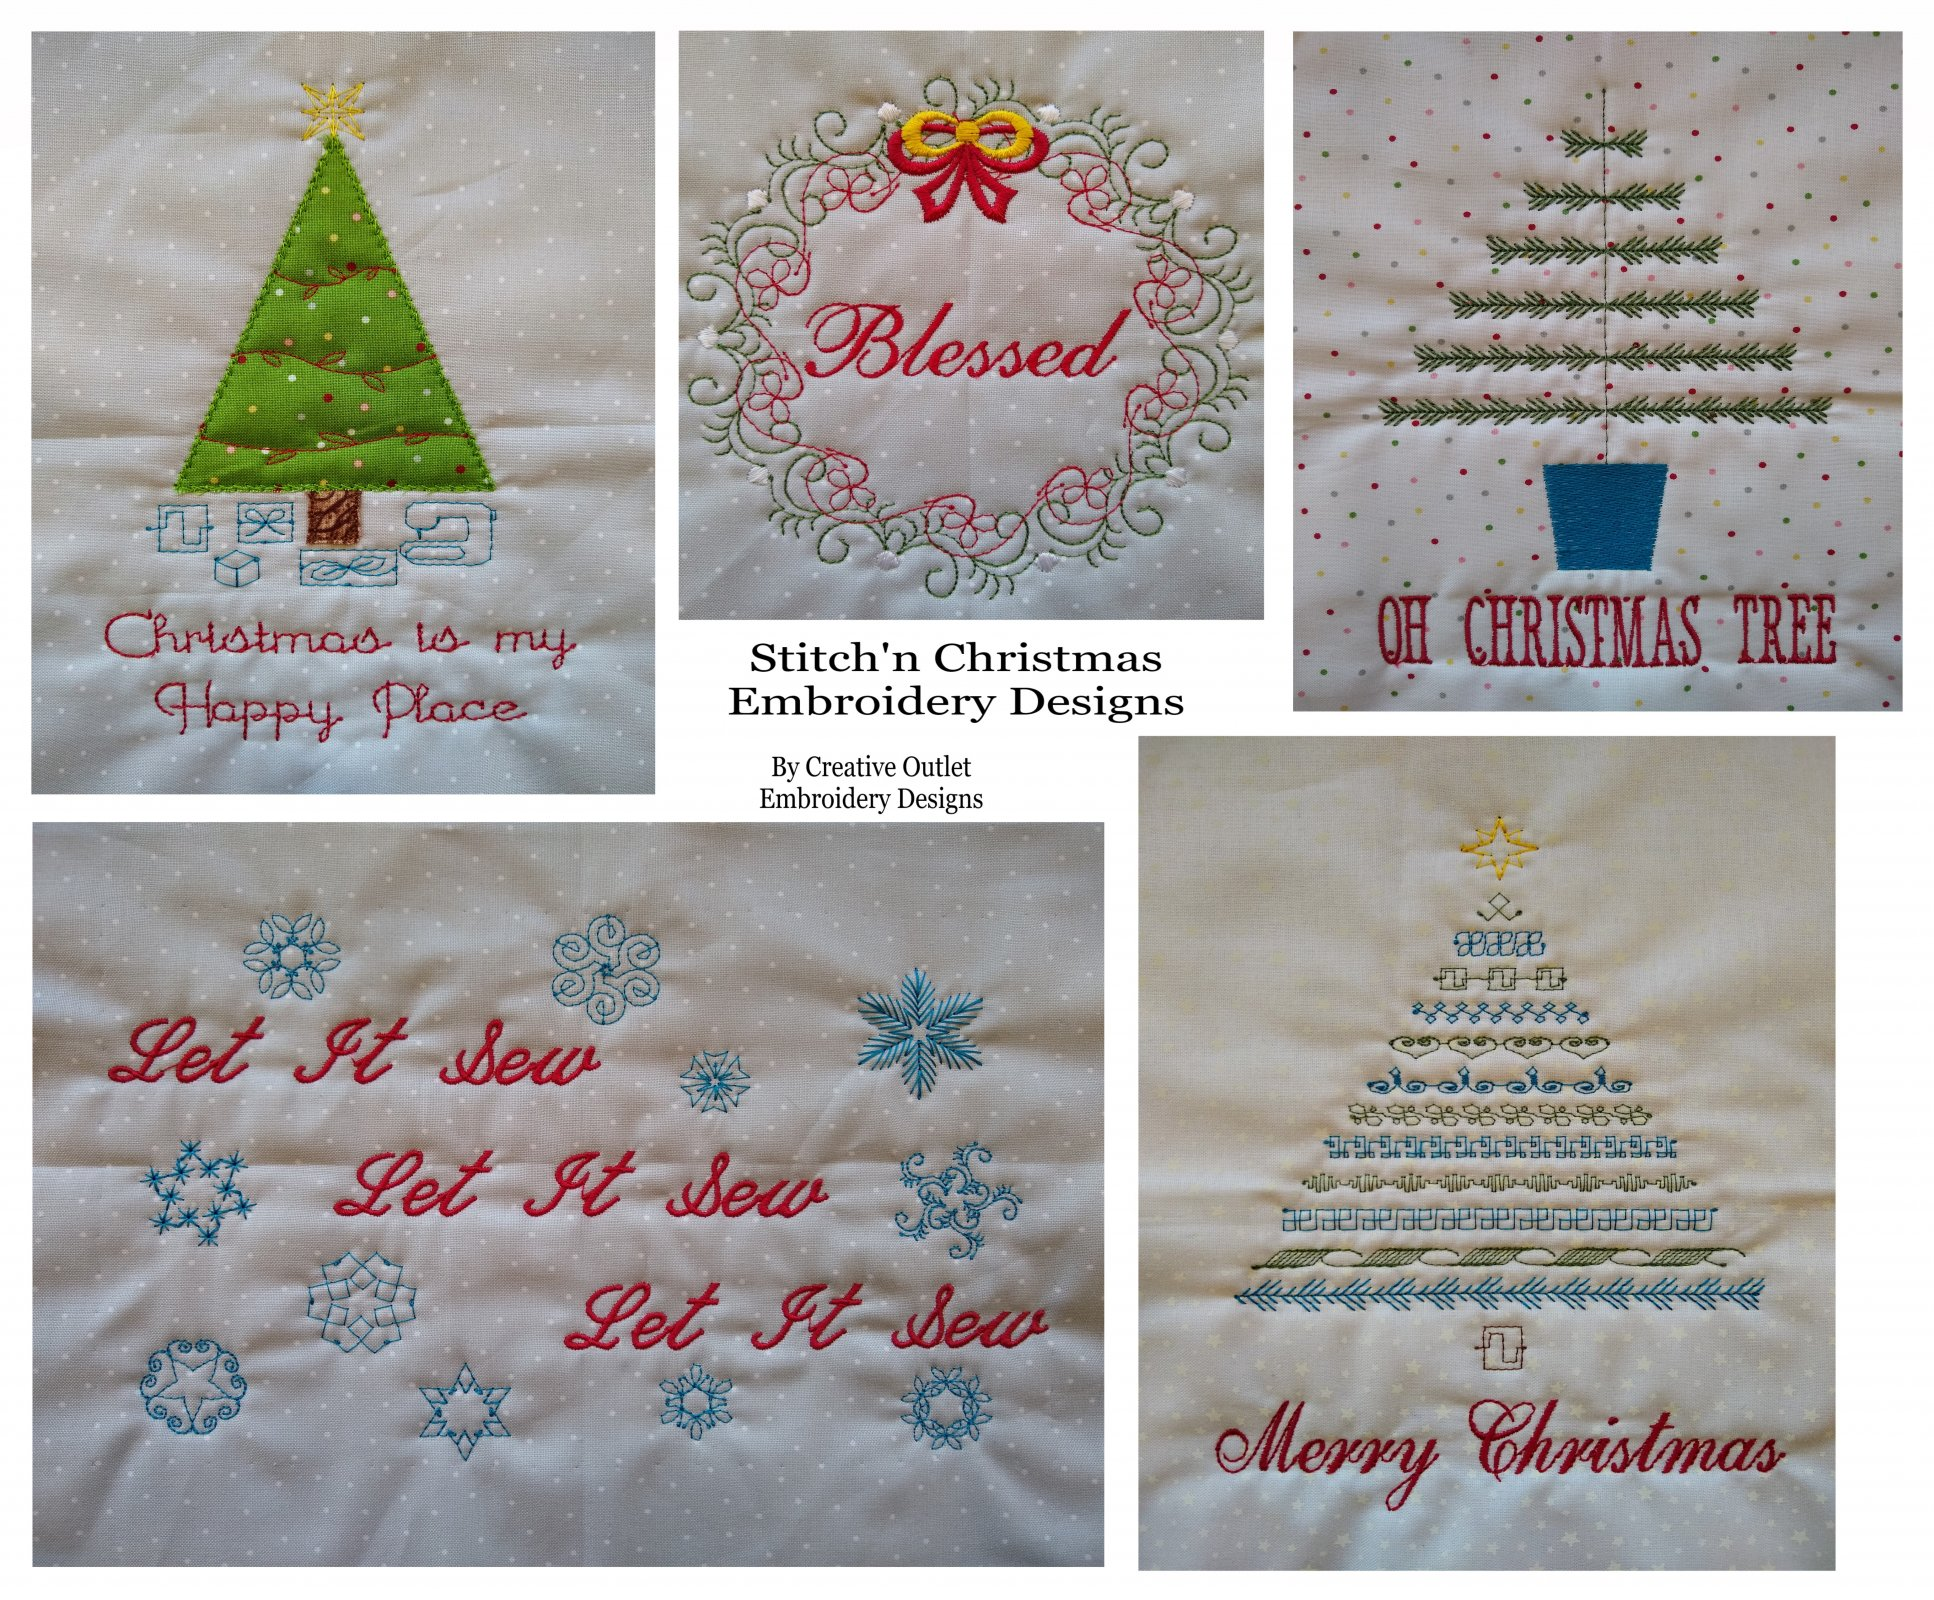 Stitch'n Christmas Embroidery Designs